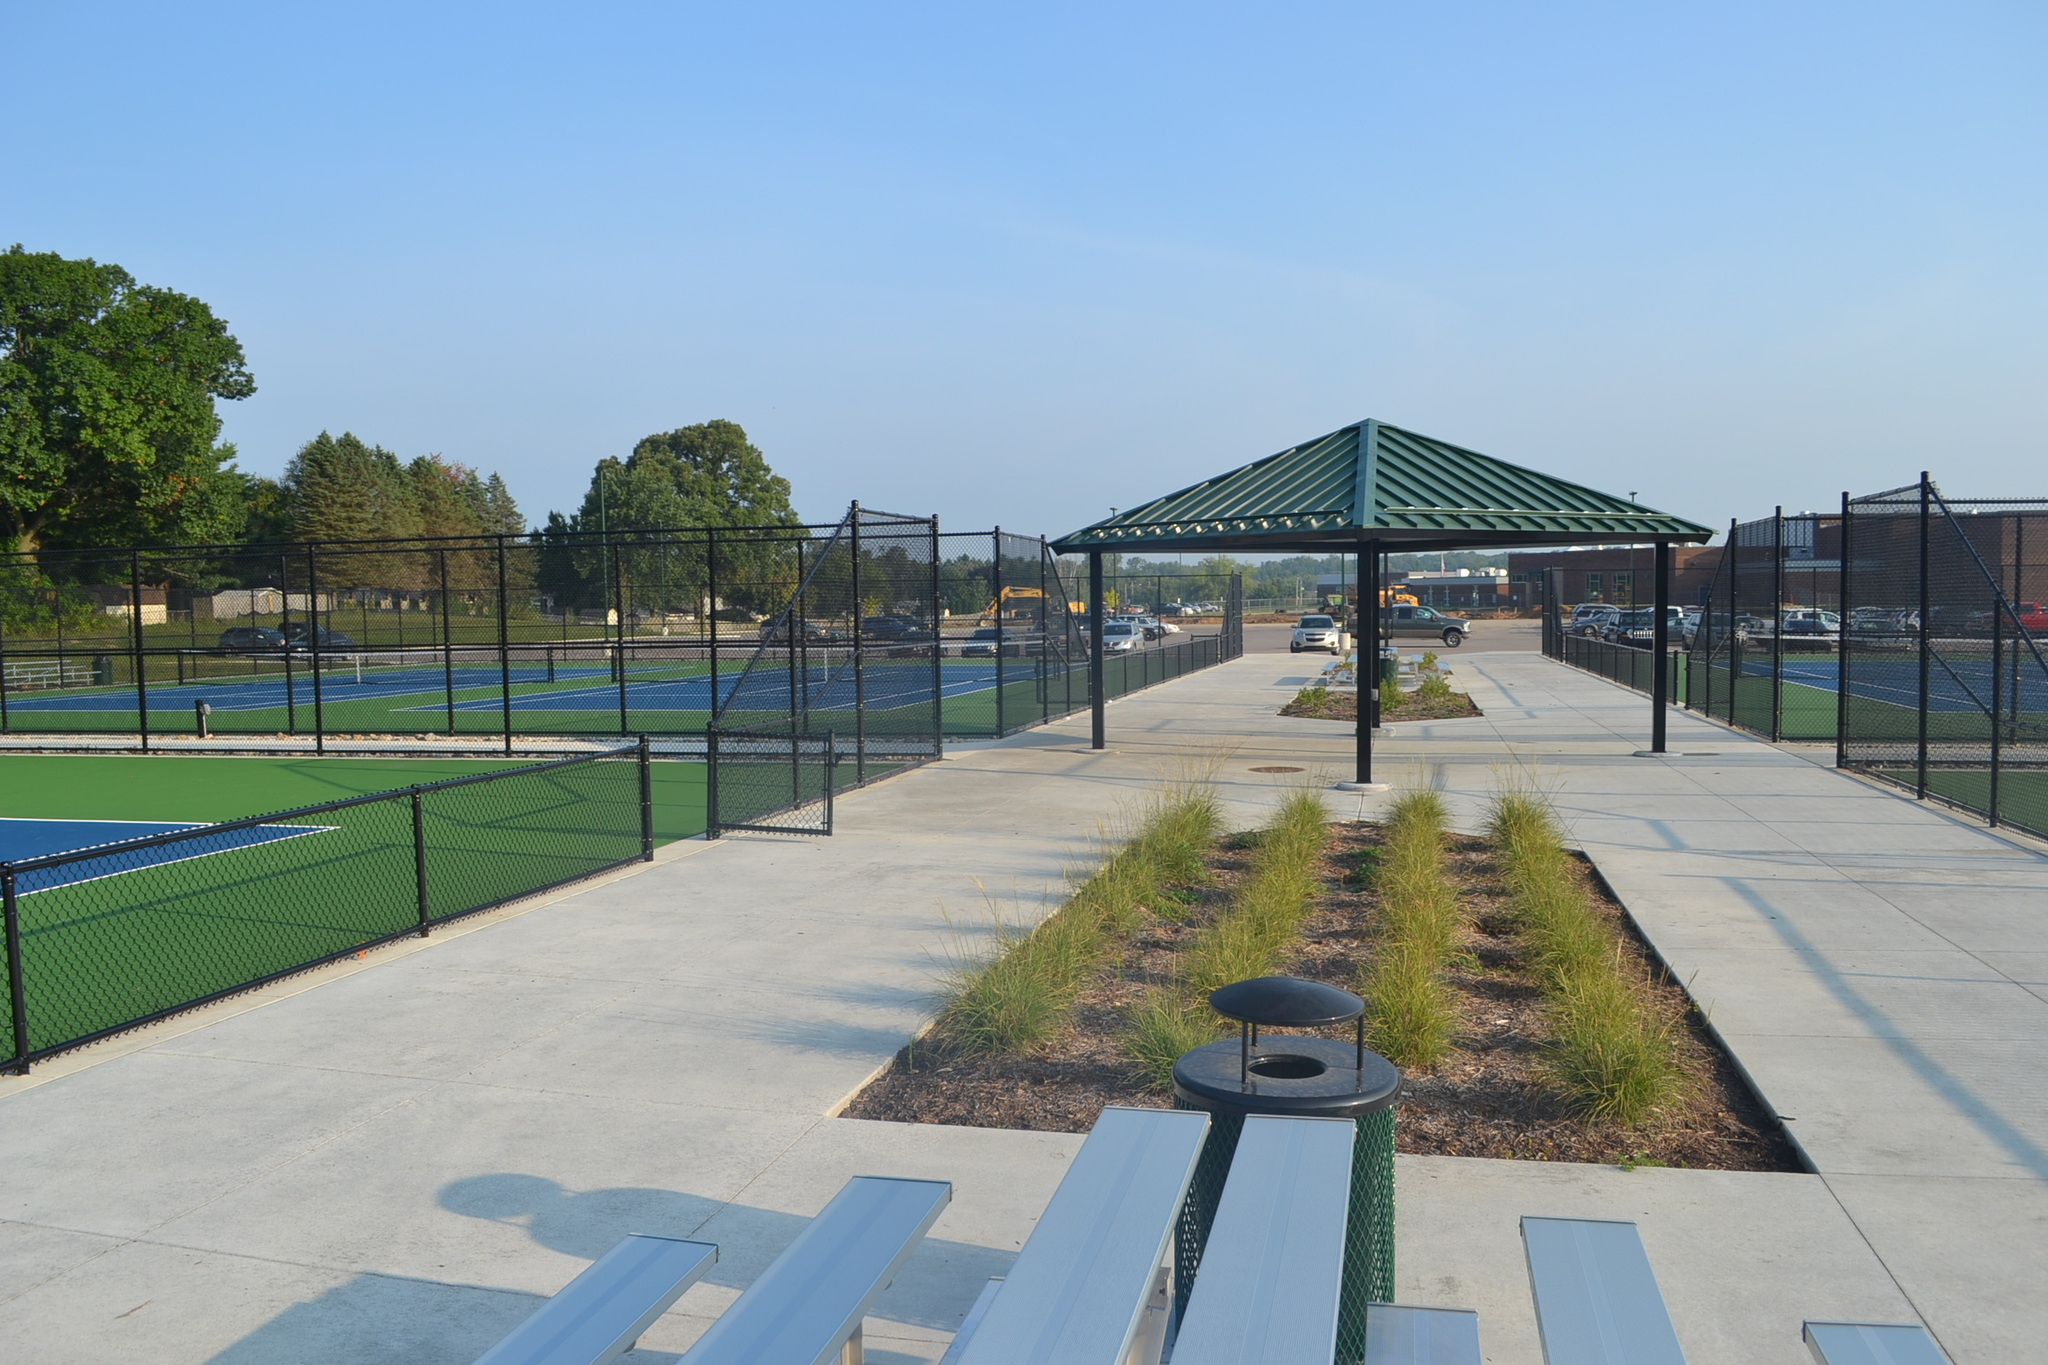 new sun shelter at tennis courts